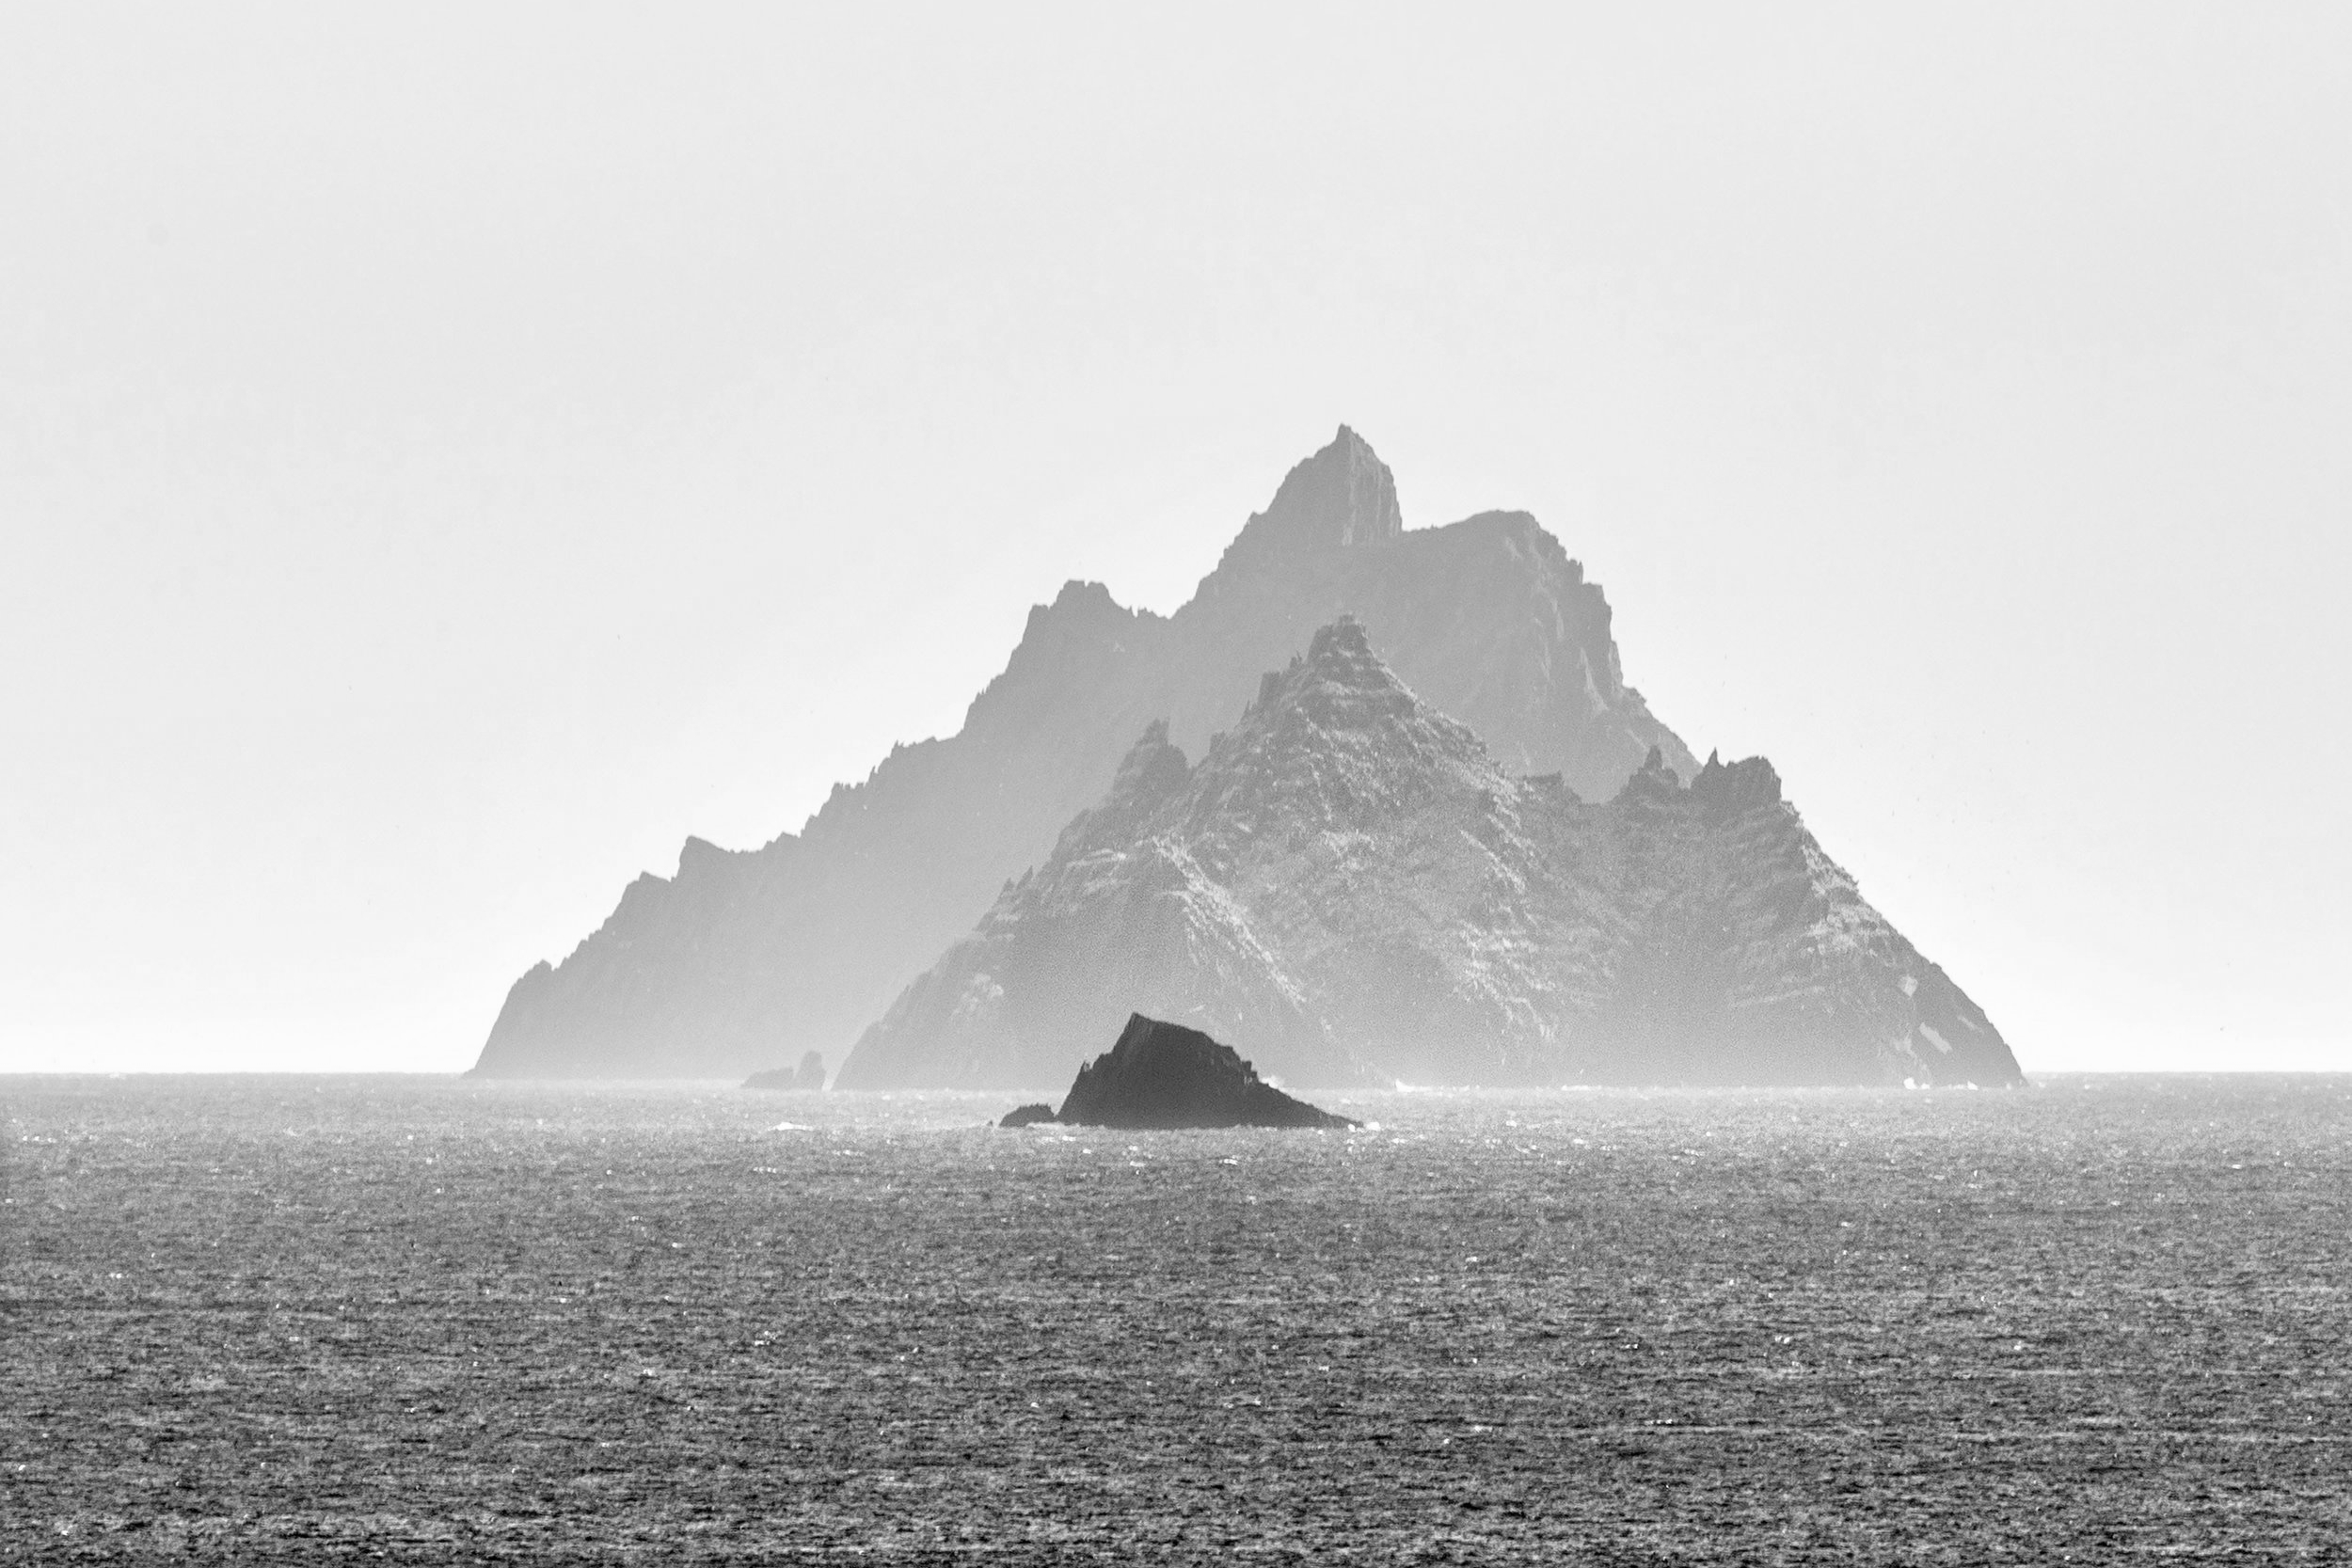 Skellig michael off the coast of Kerry in Ireland is a UNESCO World Heritage site and the location for Star Wars:The Force Awakens. Unsplash holding Image John Finn